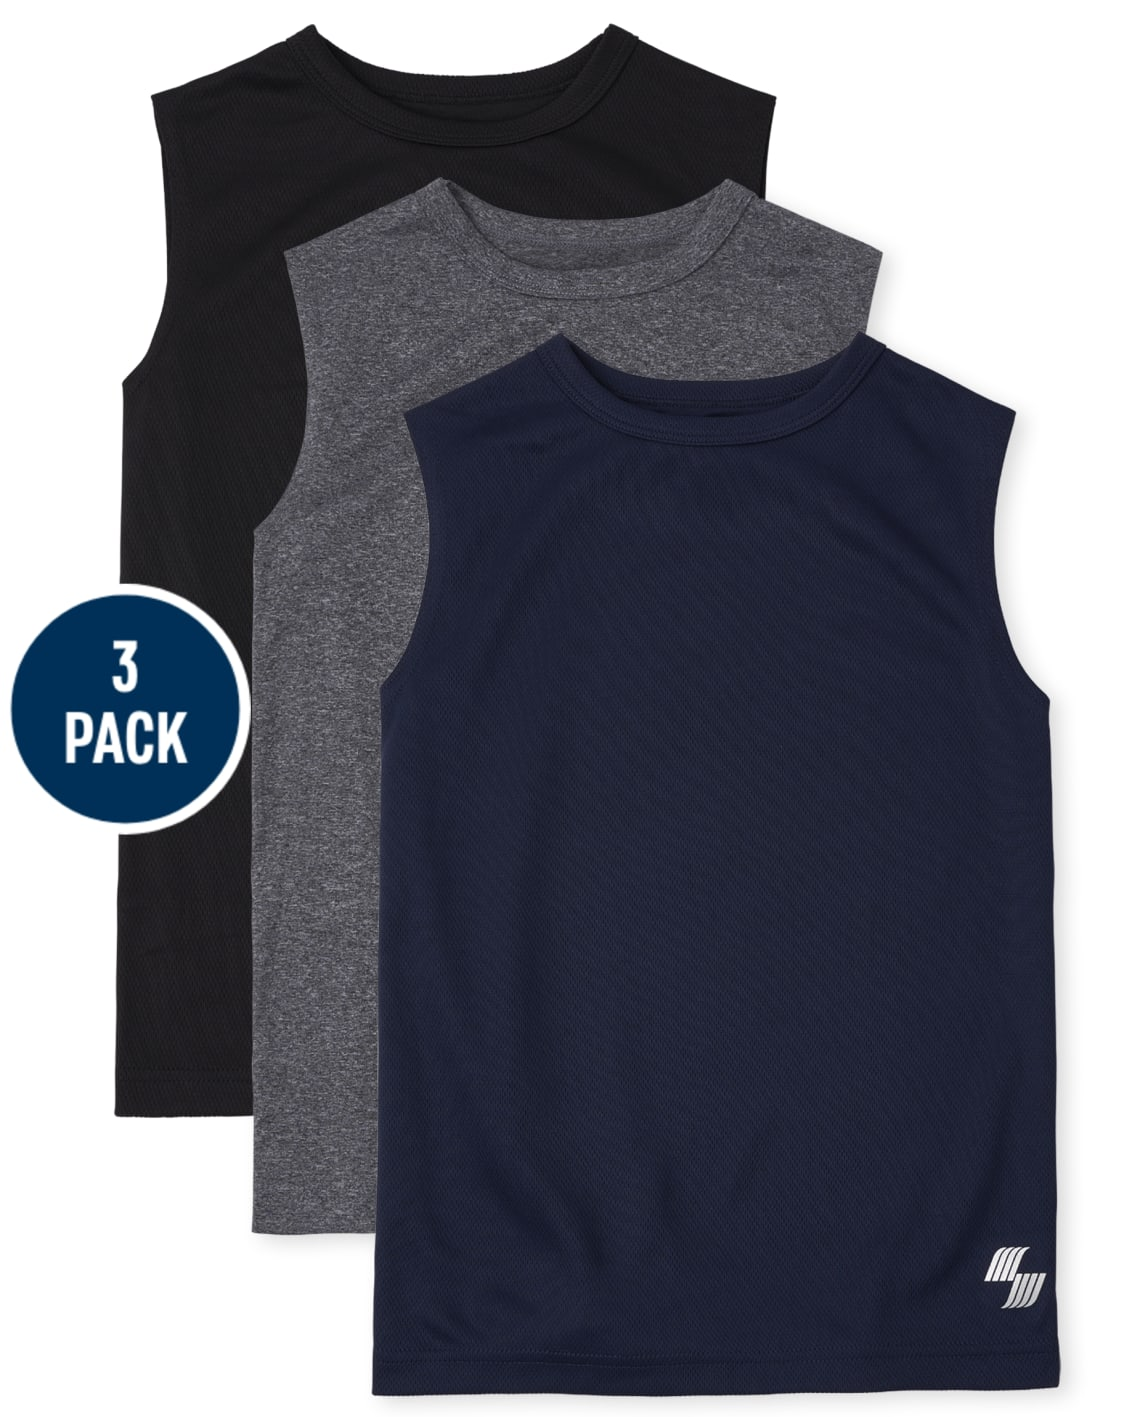 3-Pack The Childrens Place Boys Performance Muscle Tank Top